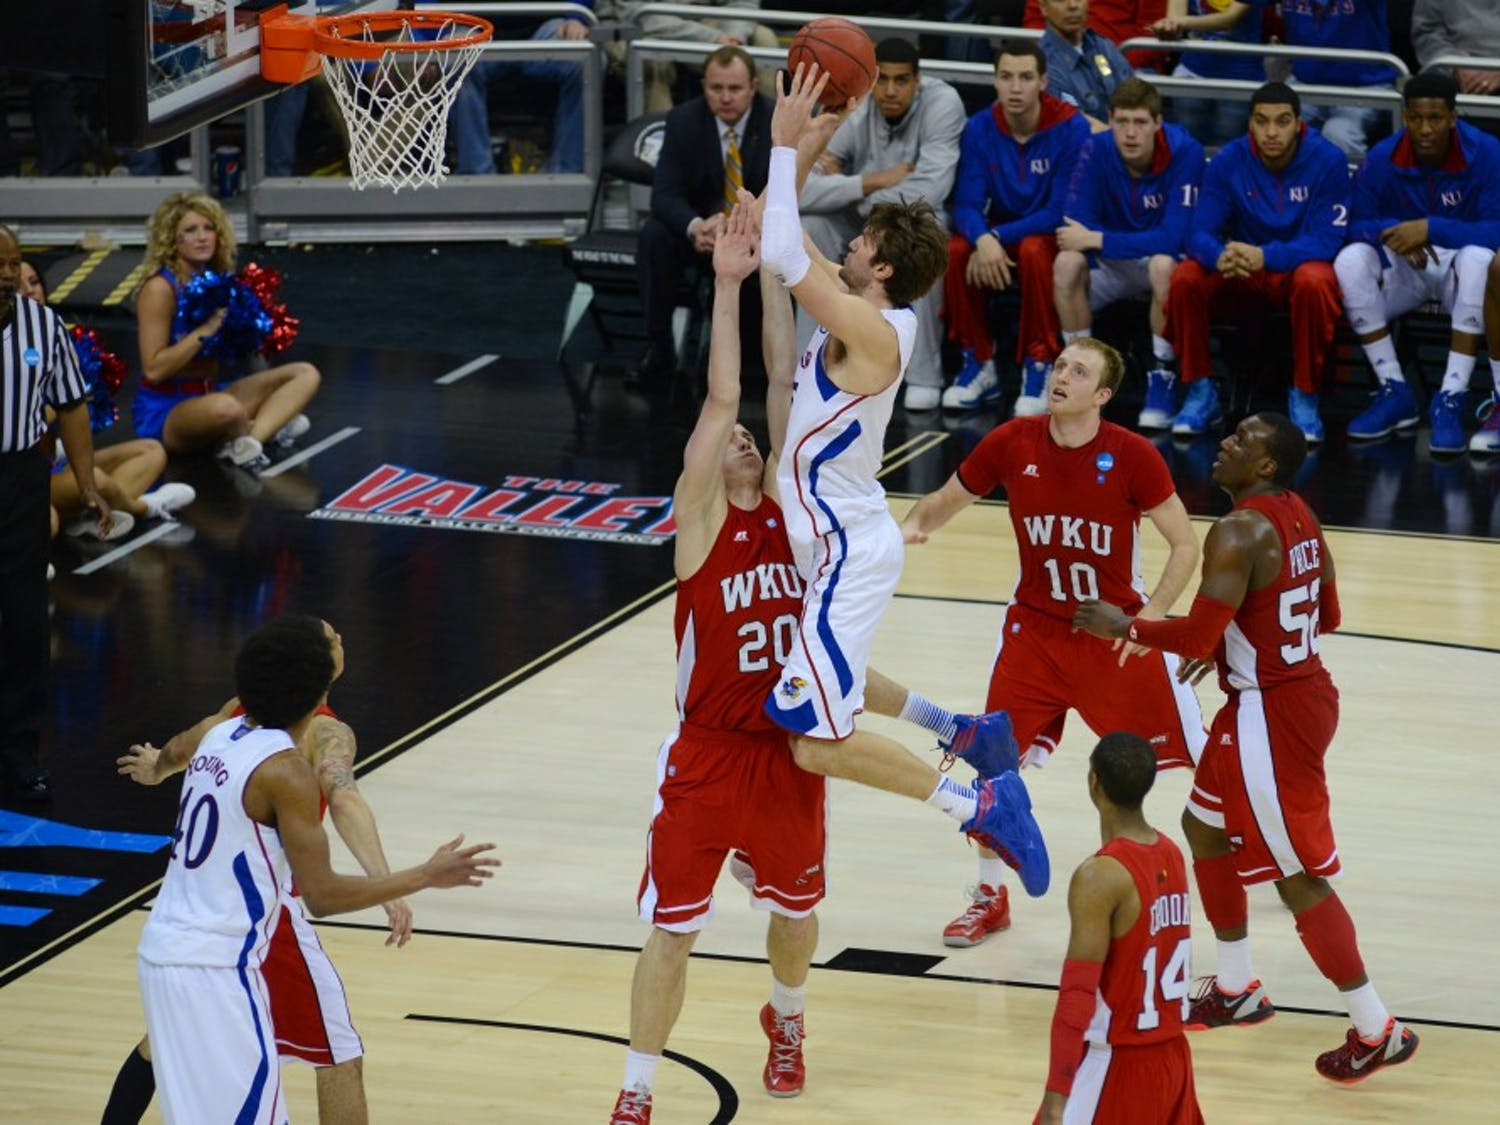 Kansas center Jeff Withey (5) takes a shot over Western Kentucky forward Aleksejs Rostov (20) in the 2nd round of the 2013 NCAA Tournament on March 22nd, 2013 at the Sprint Center in Kansas City, Missouri. Withey had 17 points, 7 blocked shots, and 6 rebounds in the game.